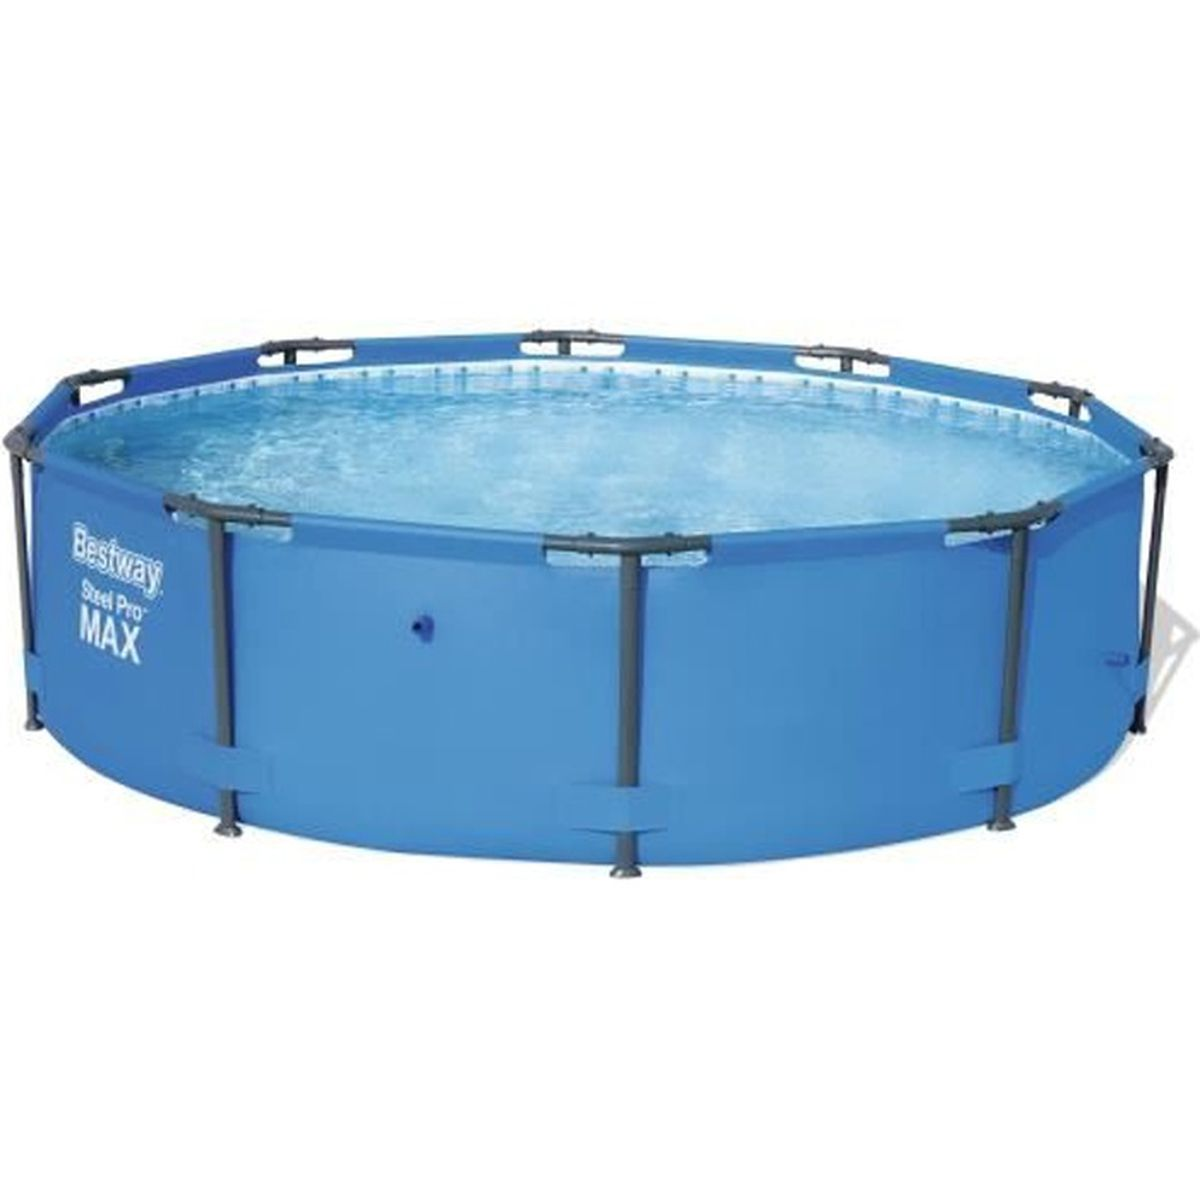 Piscine tubulaire ronde pvc d steel pro frame pools for Liner piscine tubulaire ronde